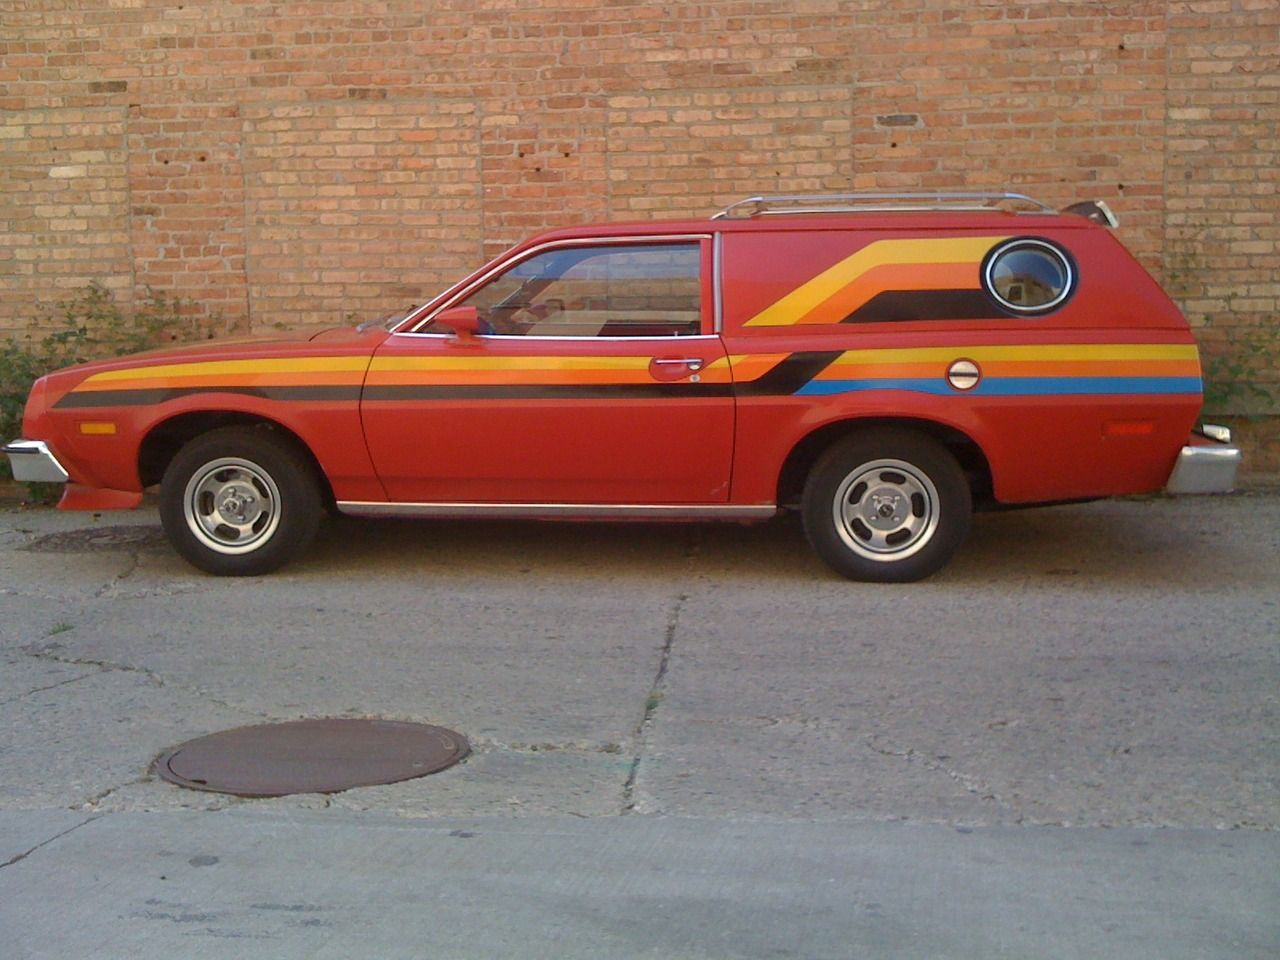 Little red wagon funny car pictures car canyon - Find This Pin And More On Cars Trucks By Capnfrank